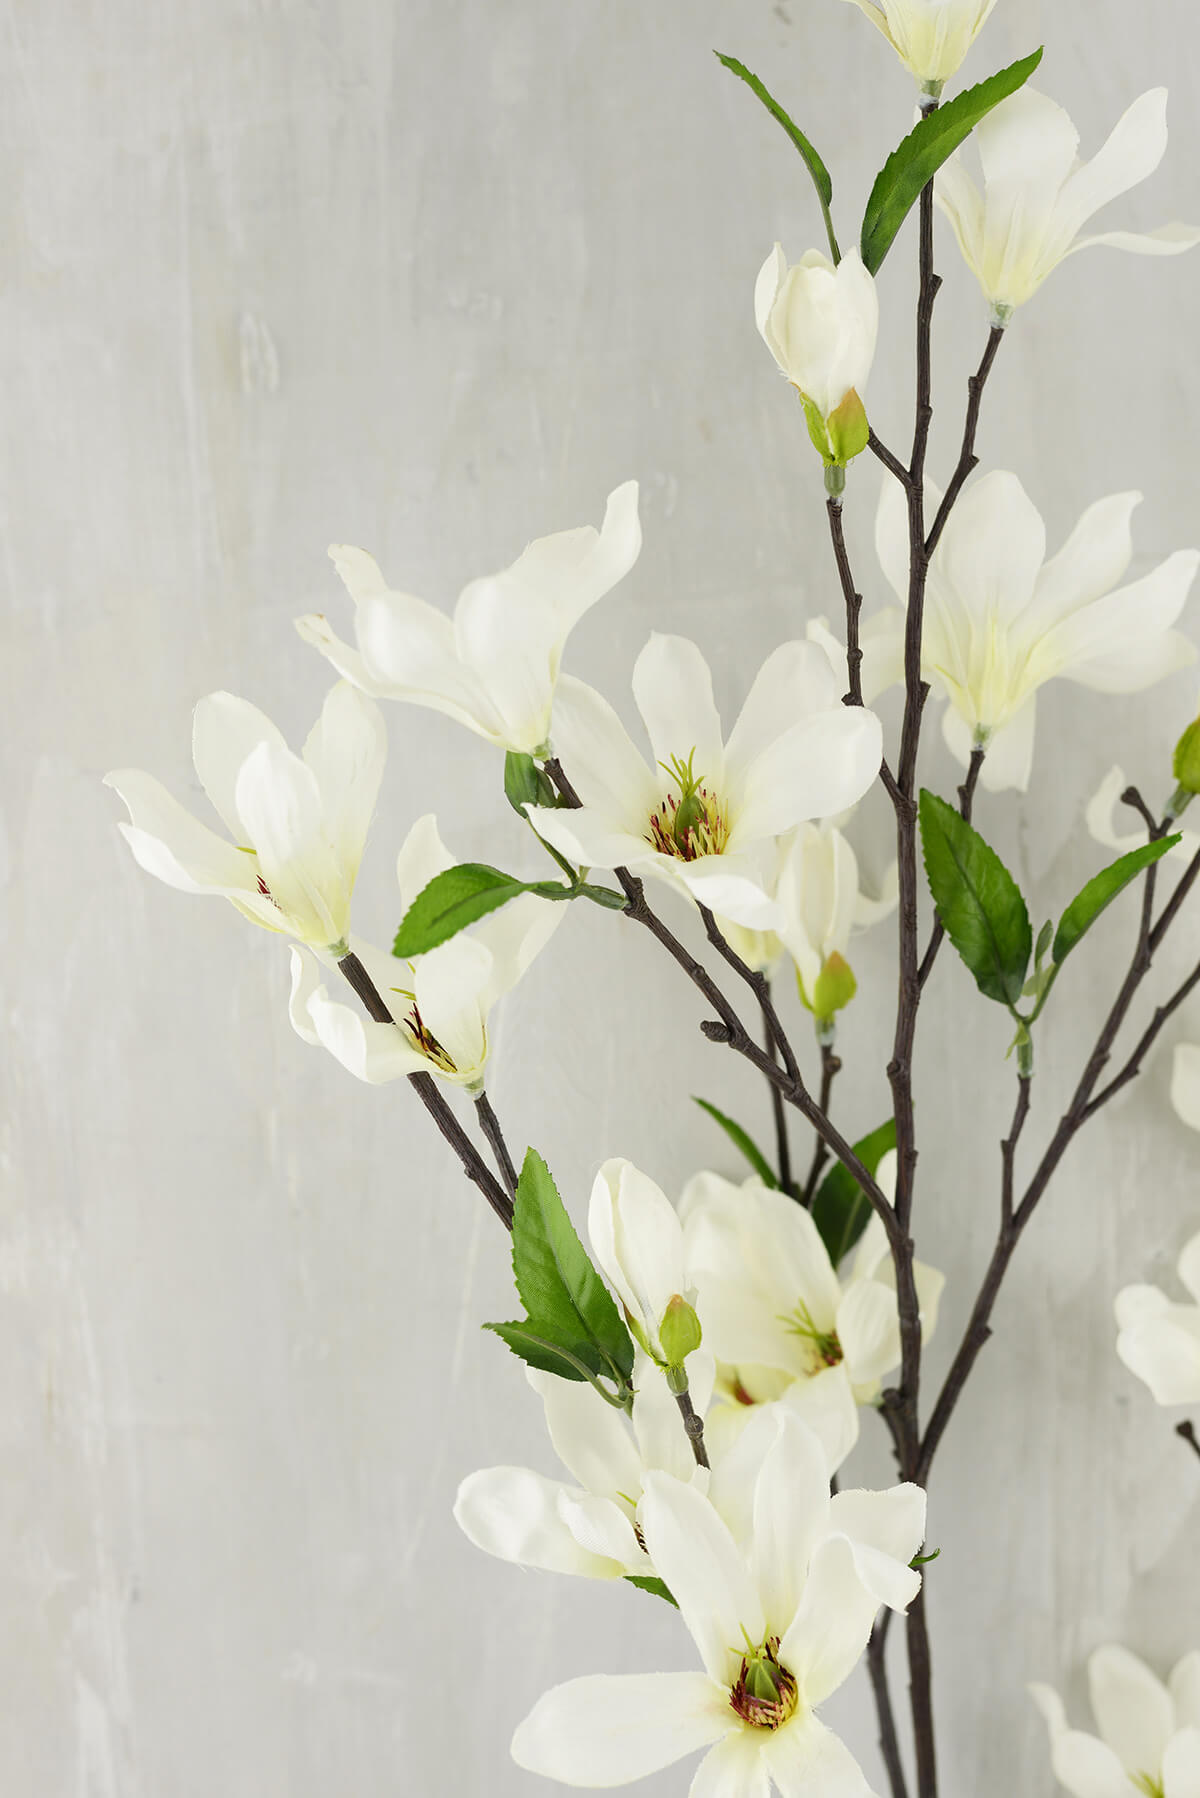 Magnolia Flowering Branches Cream Flowers 44